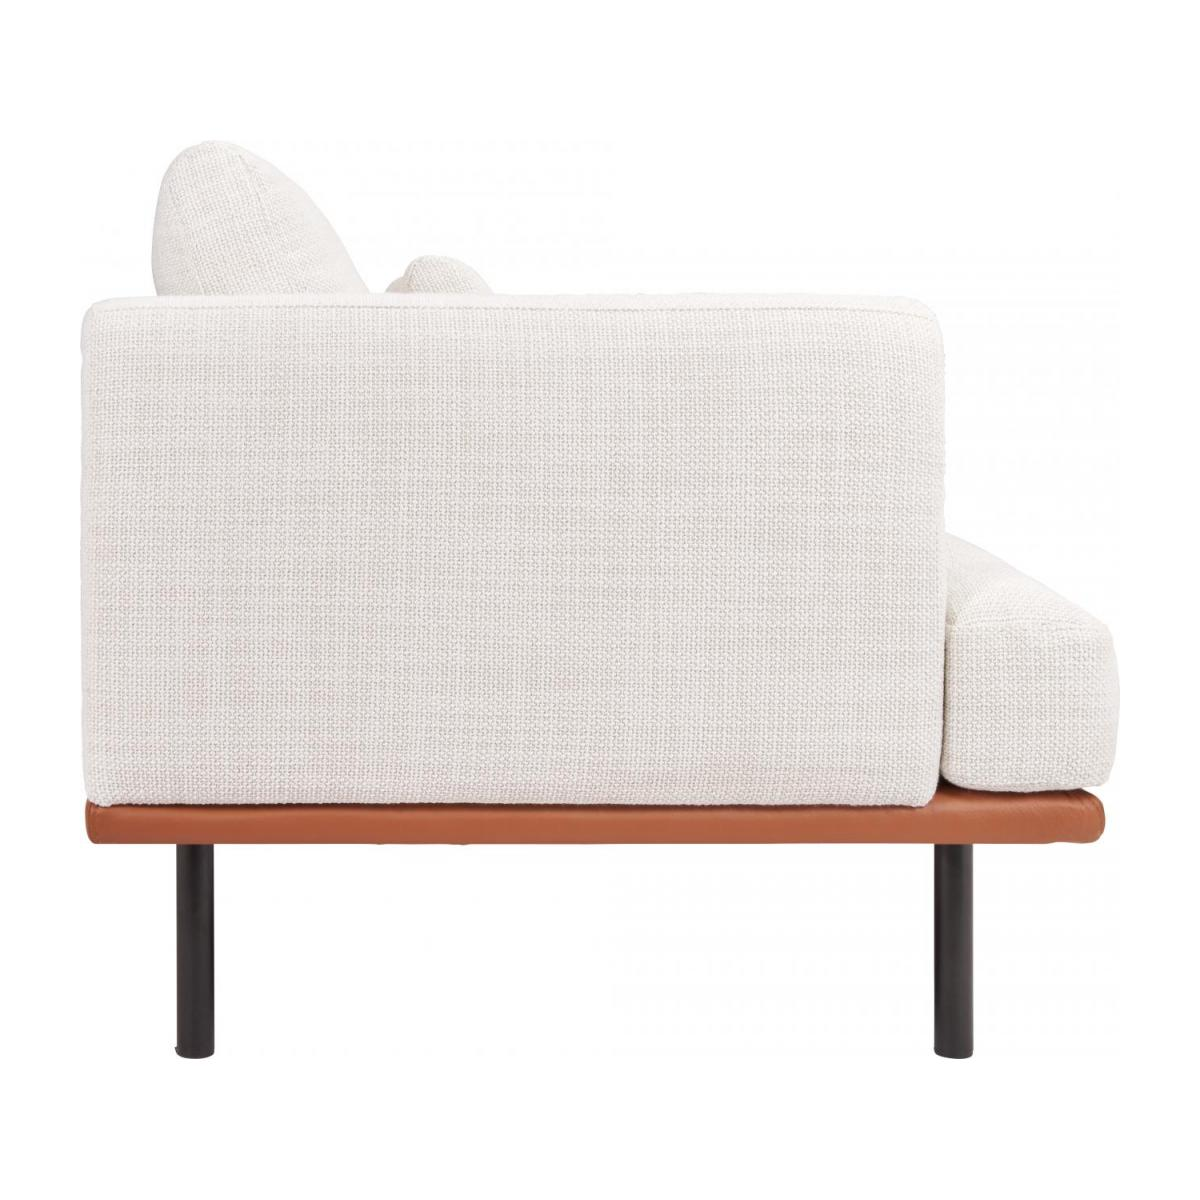 3 seater sofa in Fasoli fabric, snow white with base in brown leather n°5